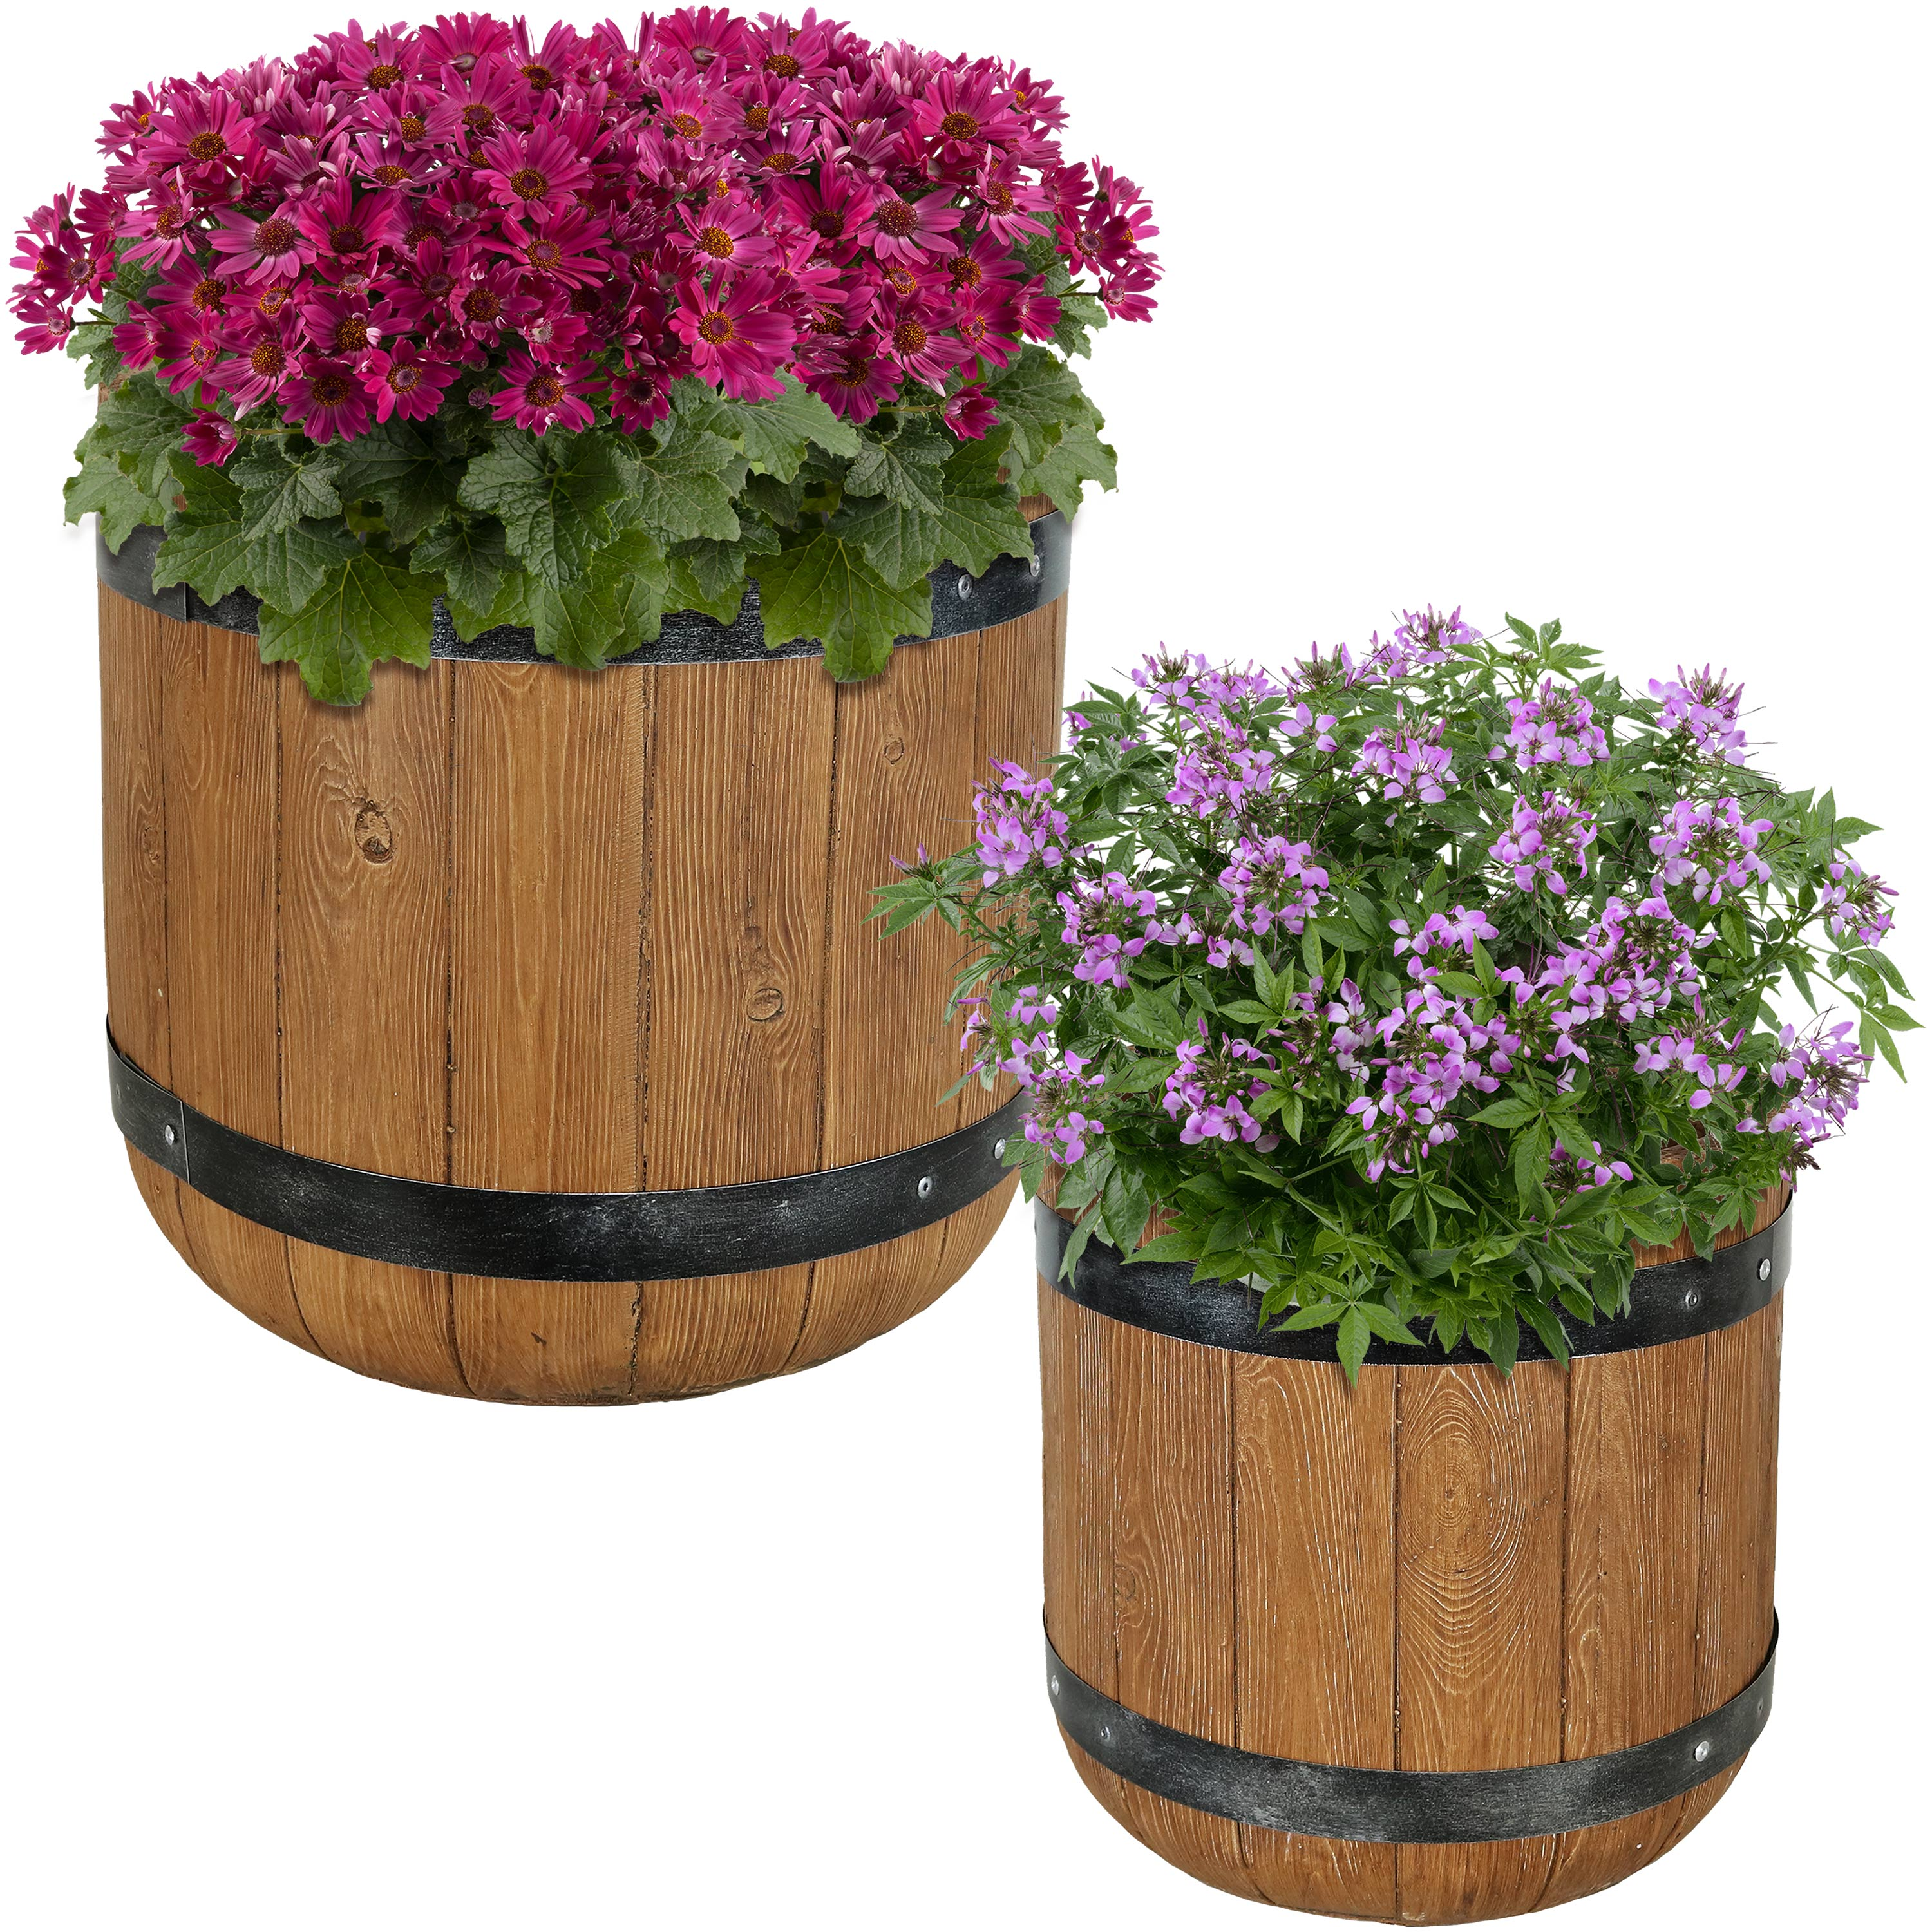 Vineyard Fiber Clay Barrel Planter Flower Pot Set Photo